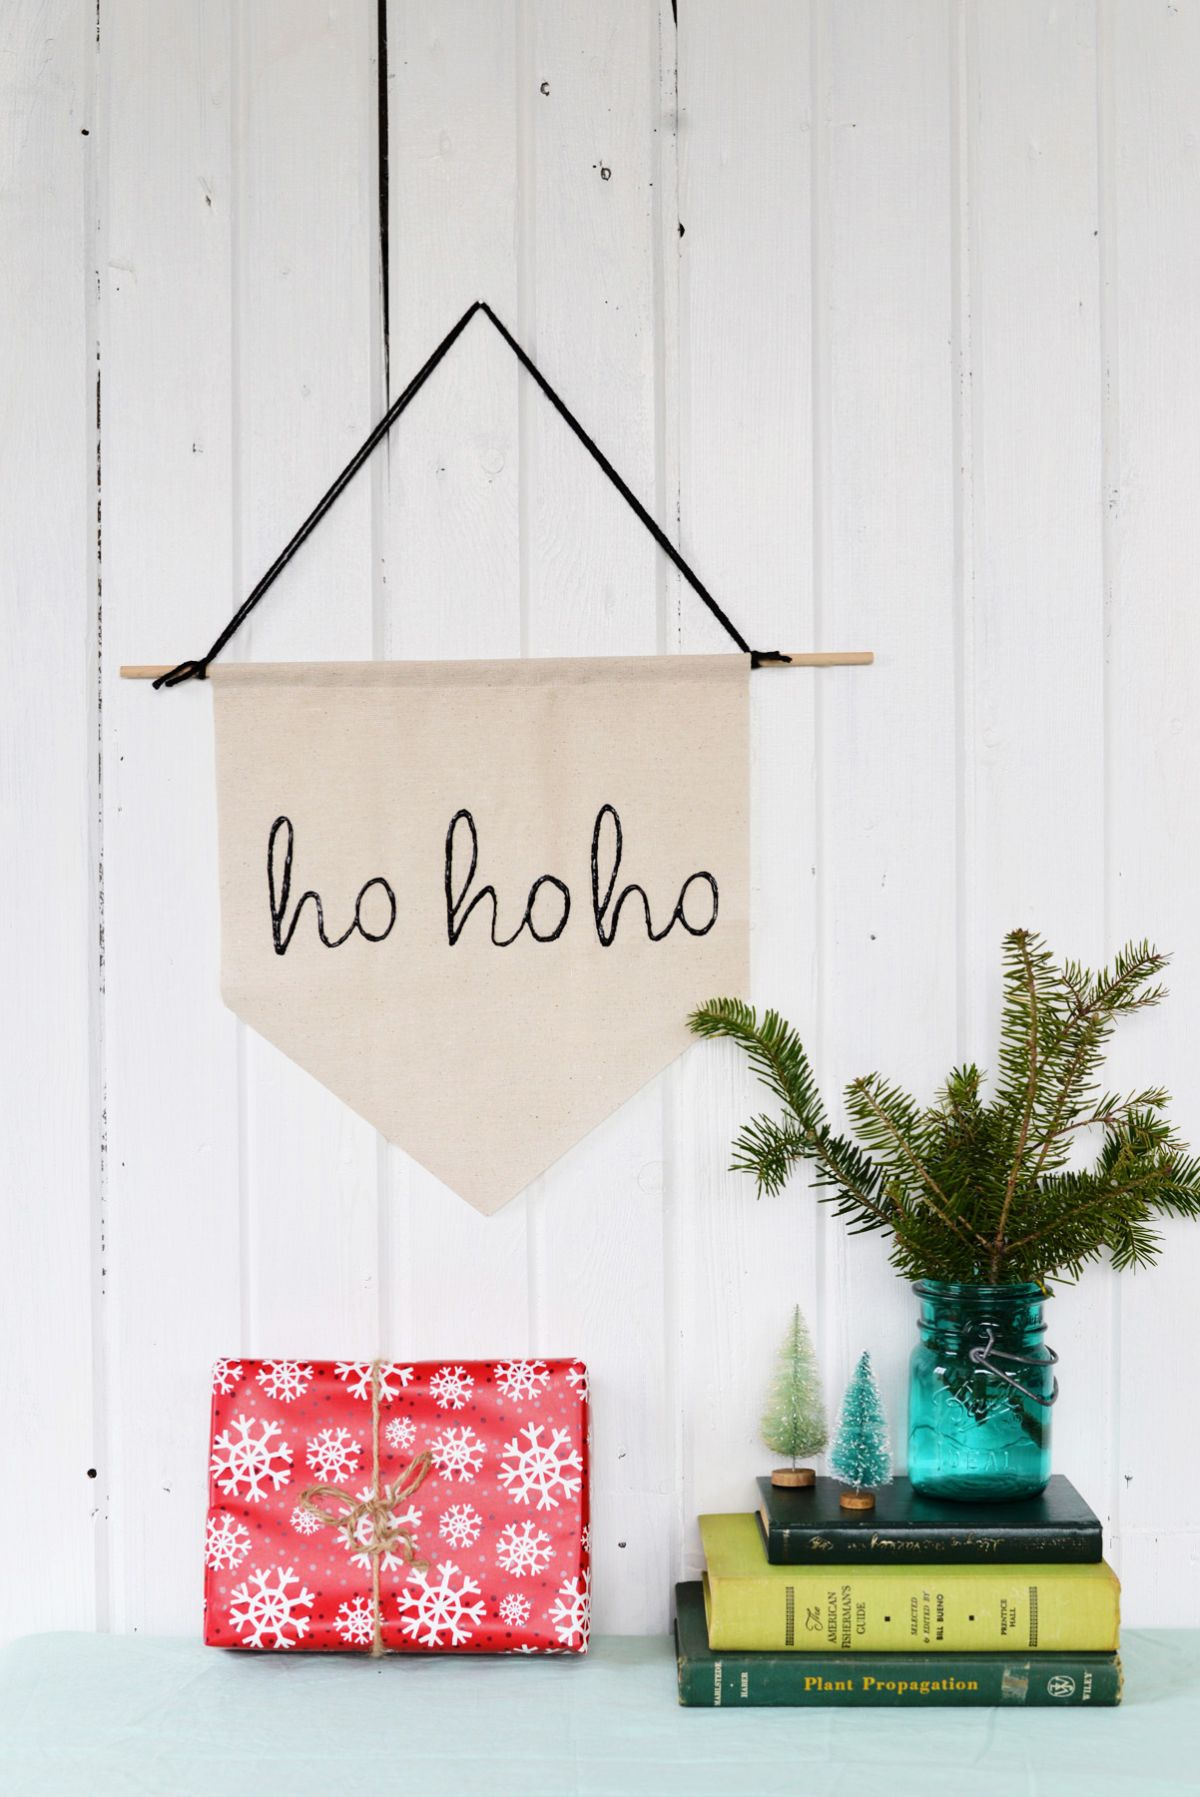 DIY Banner Ideas To Make Your Celebrations More Festive